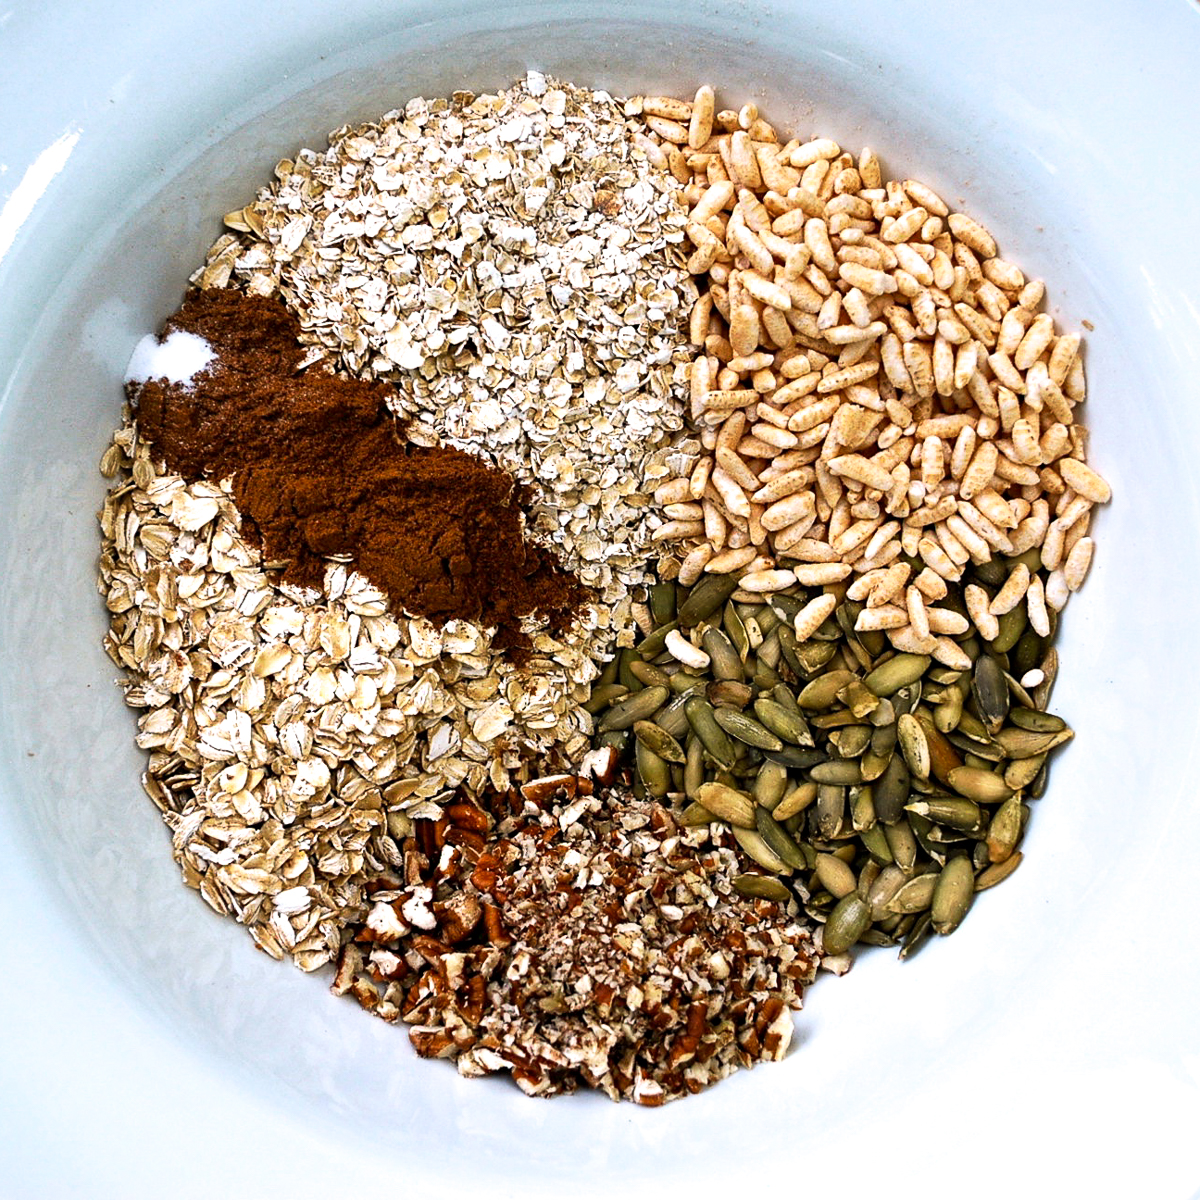 Dry ingredients for pumpkin spice granola in a while bowl.